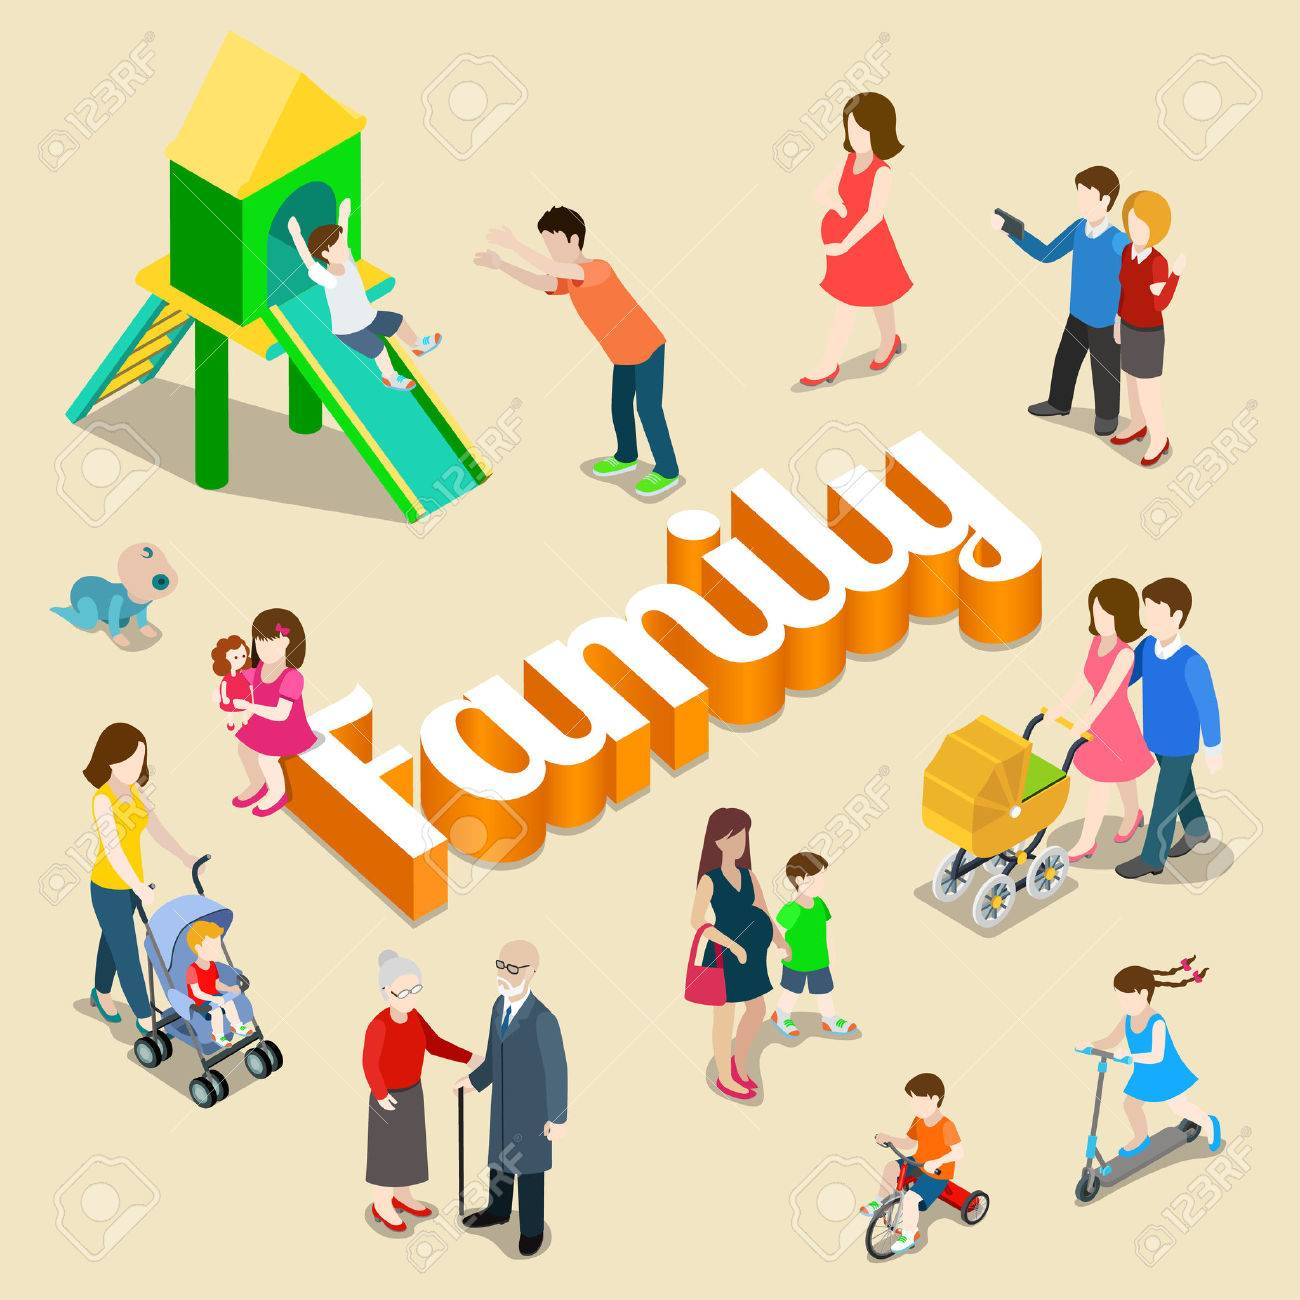 Family modern lifestyle flat 3d web isometric infographic vector. Young joyful parents micro male female group parenting mother father dad mom huge letters. Creative people collection. Stock Vector - 48578844